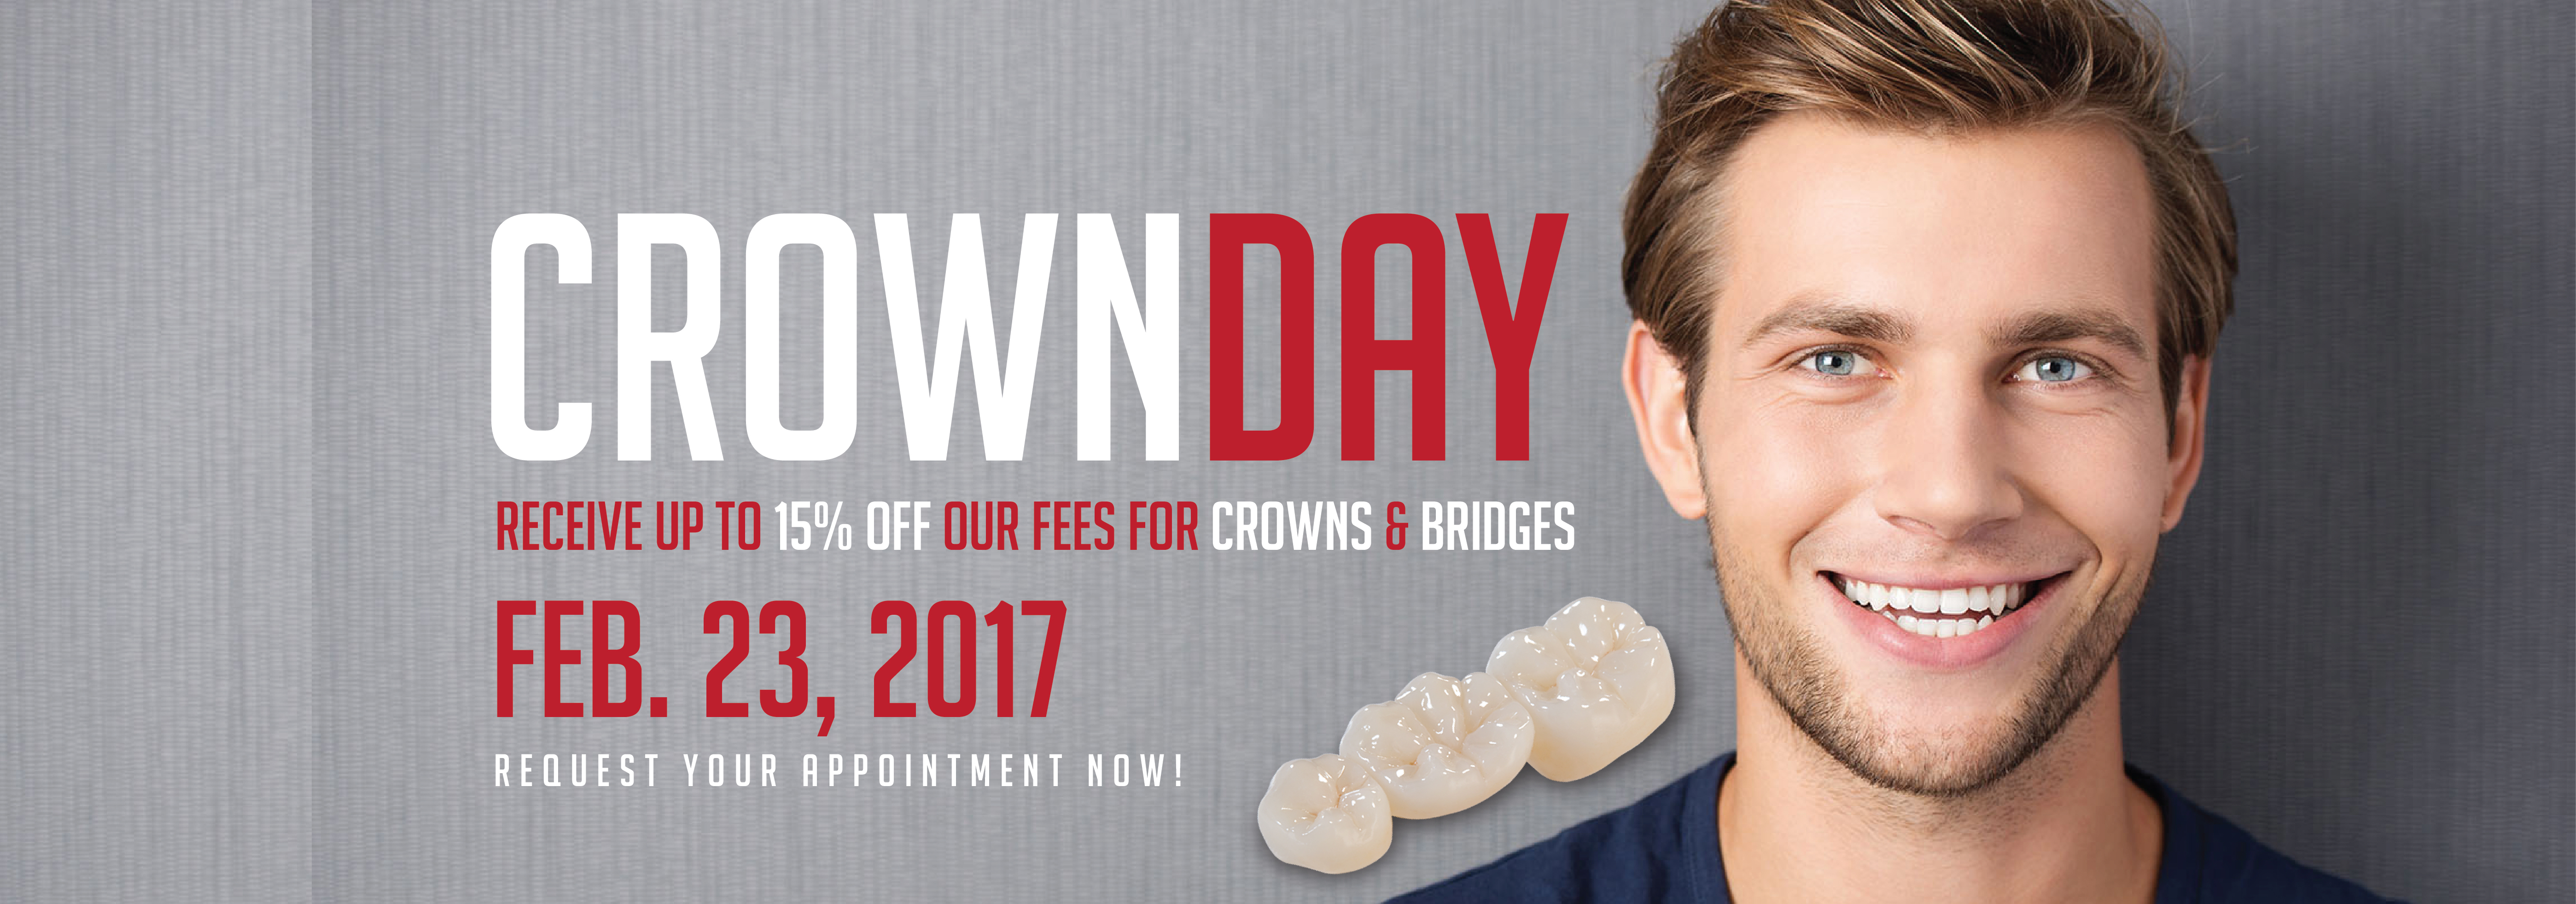 Crown-Day_Feb-23-2017-2